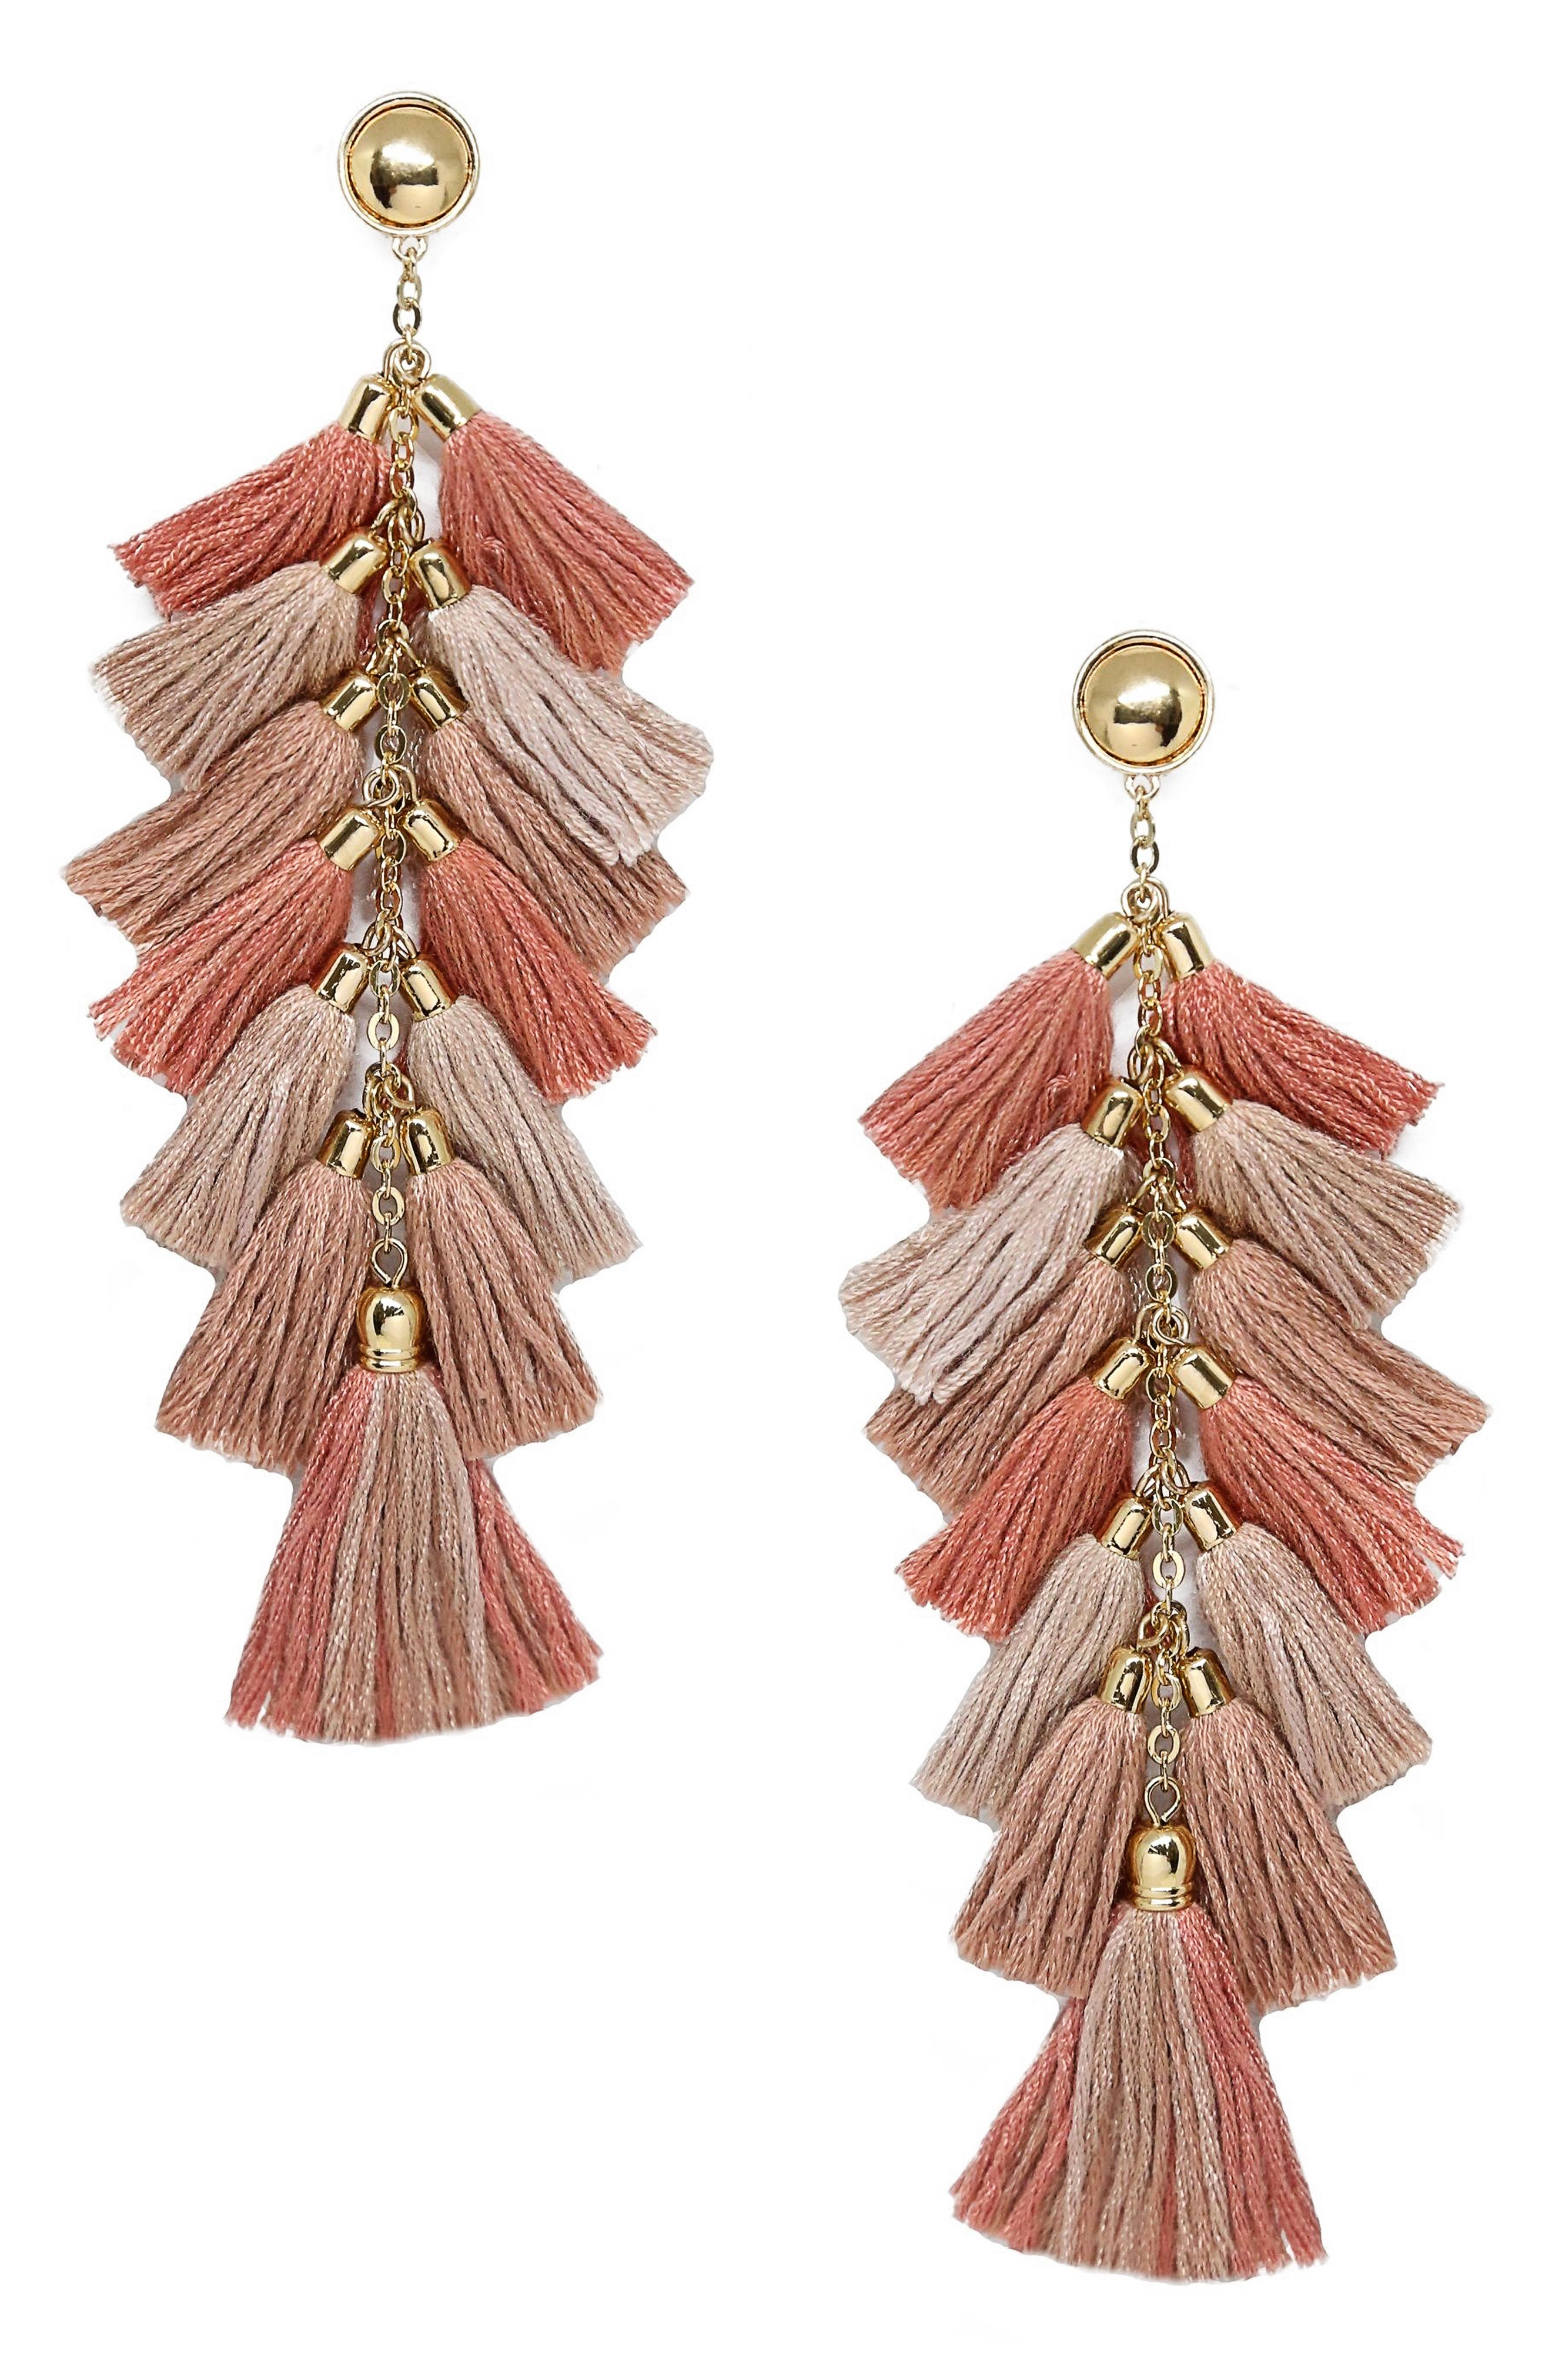 Multi Tassel Statement Earrings,                             Main thumbnail 1, color,                             250